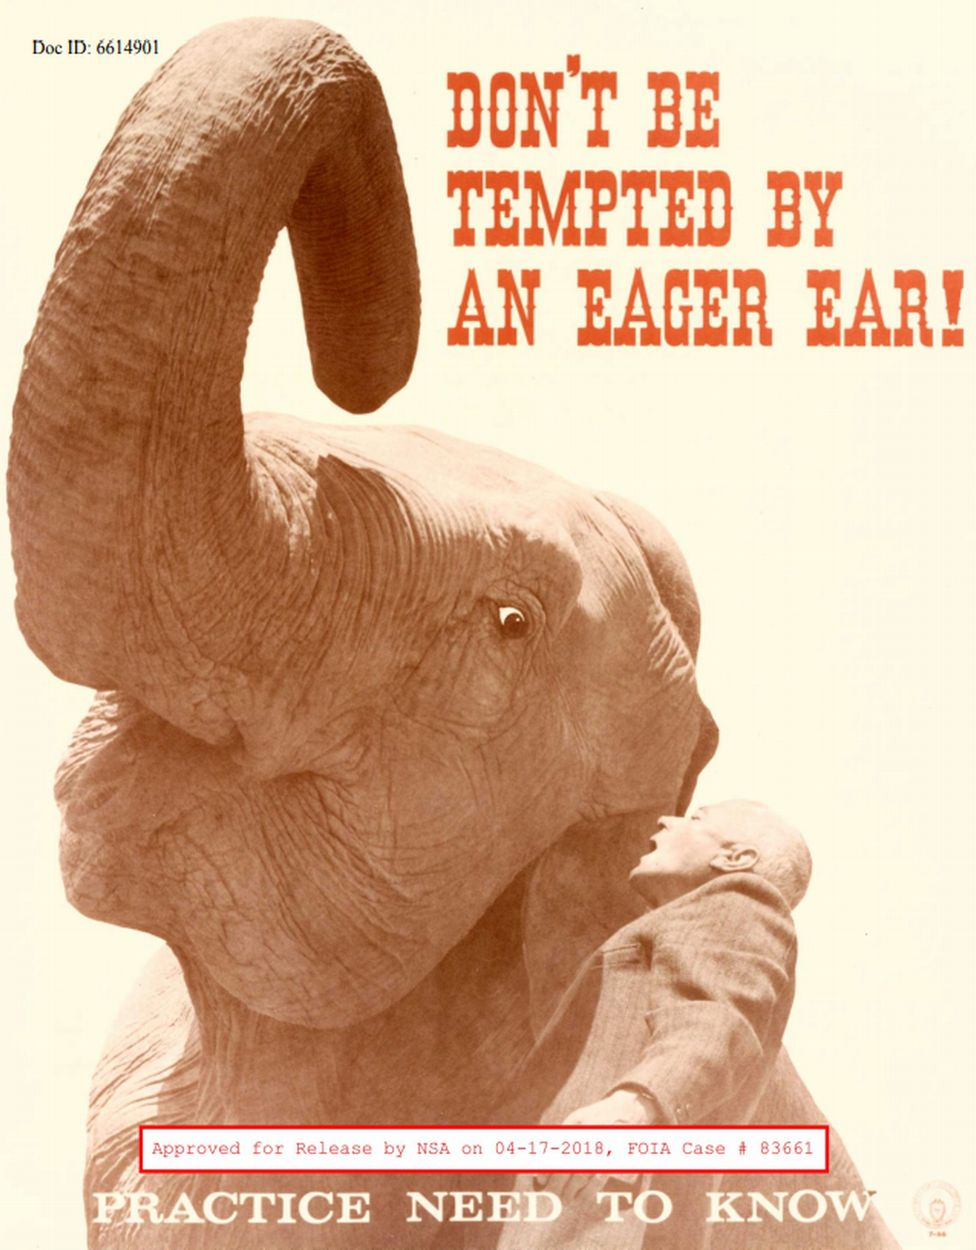 """Don't be tempted by an eager ear"" - a elephant features in an NSA poster"